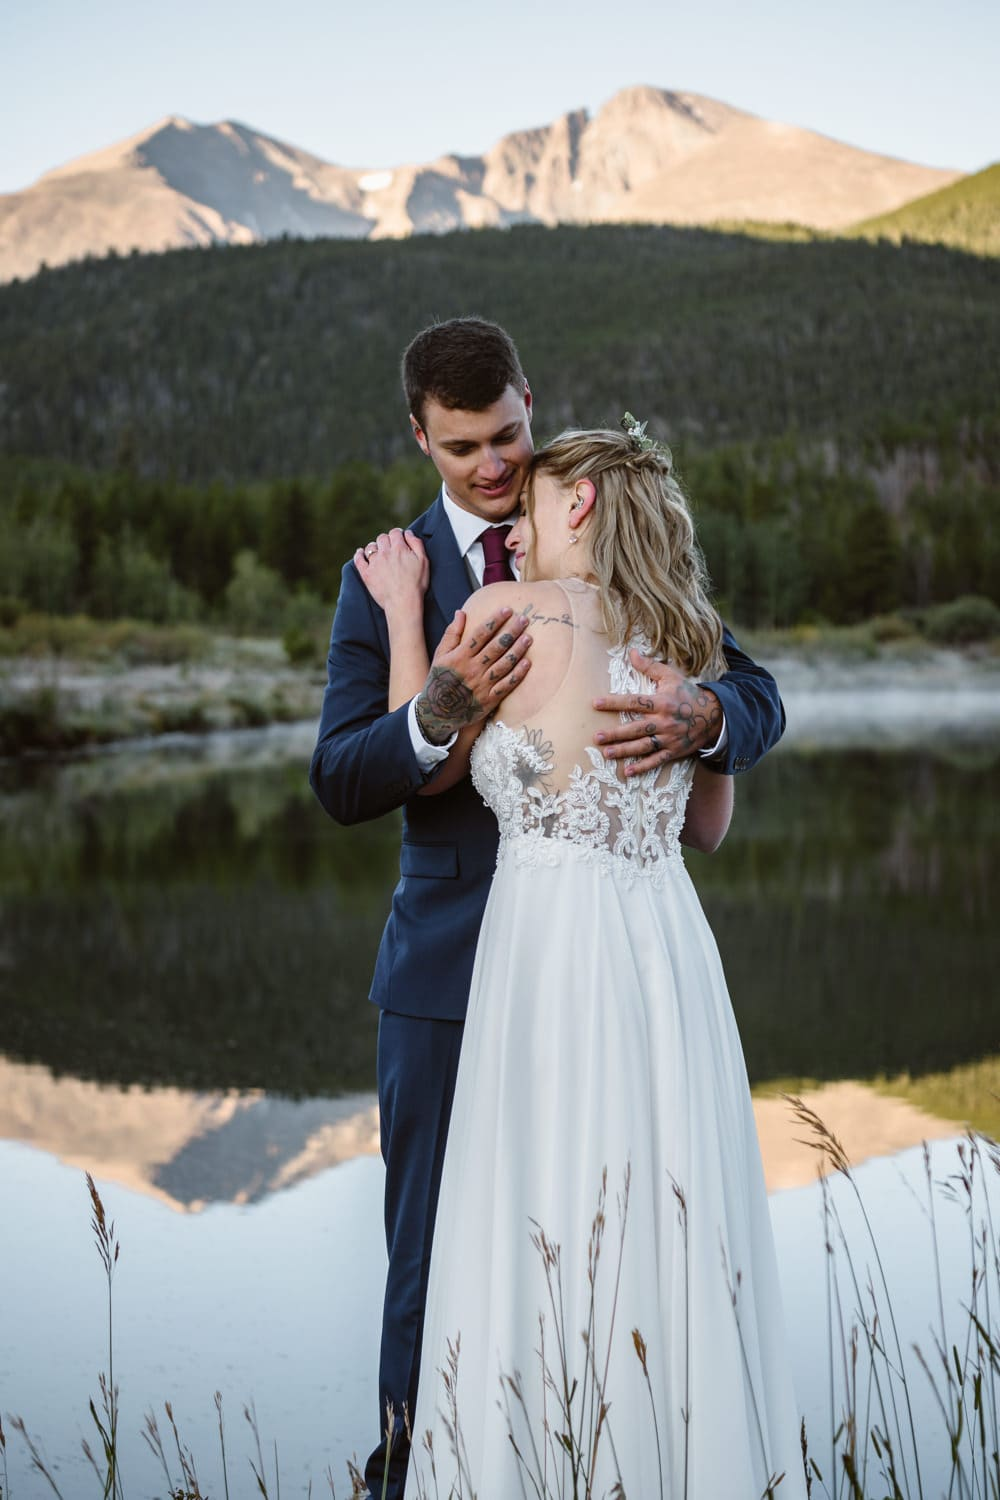 Announcing Your Elopement - Lily Lake Elopement